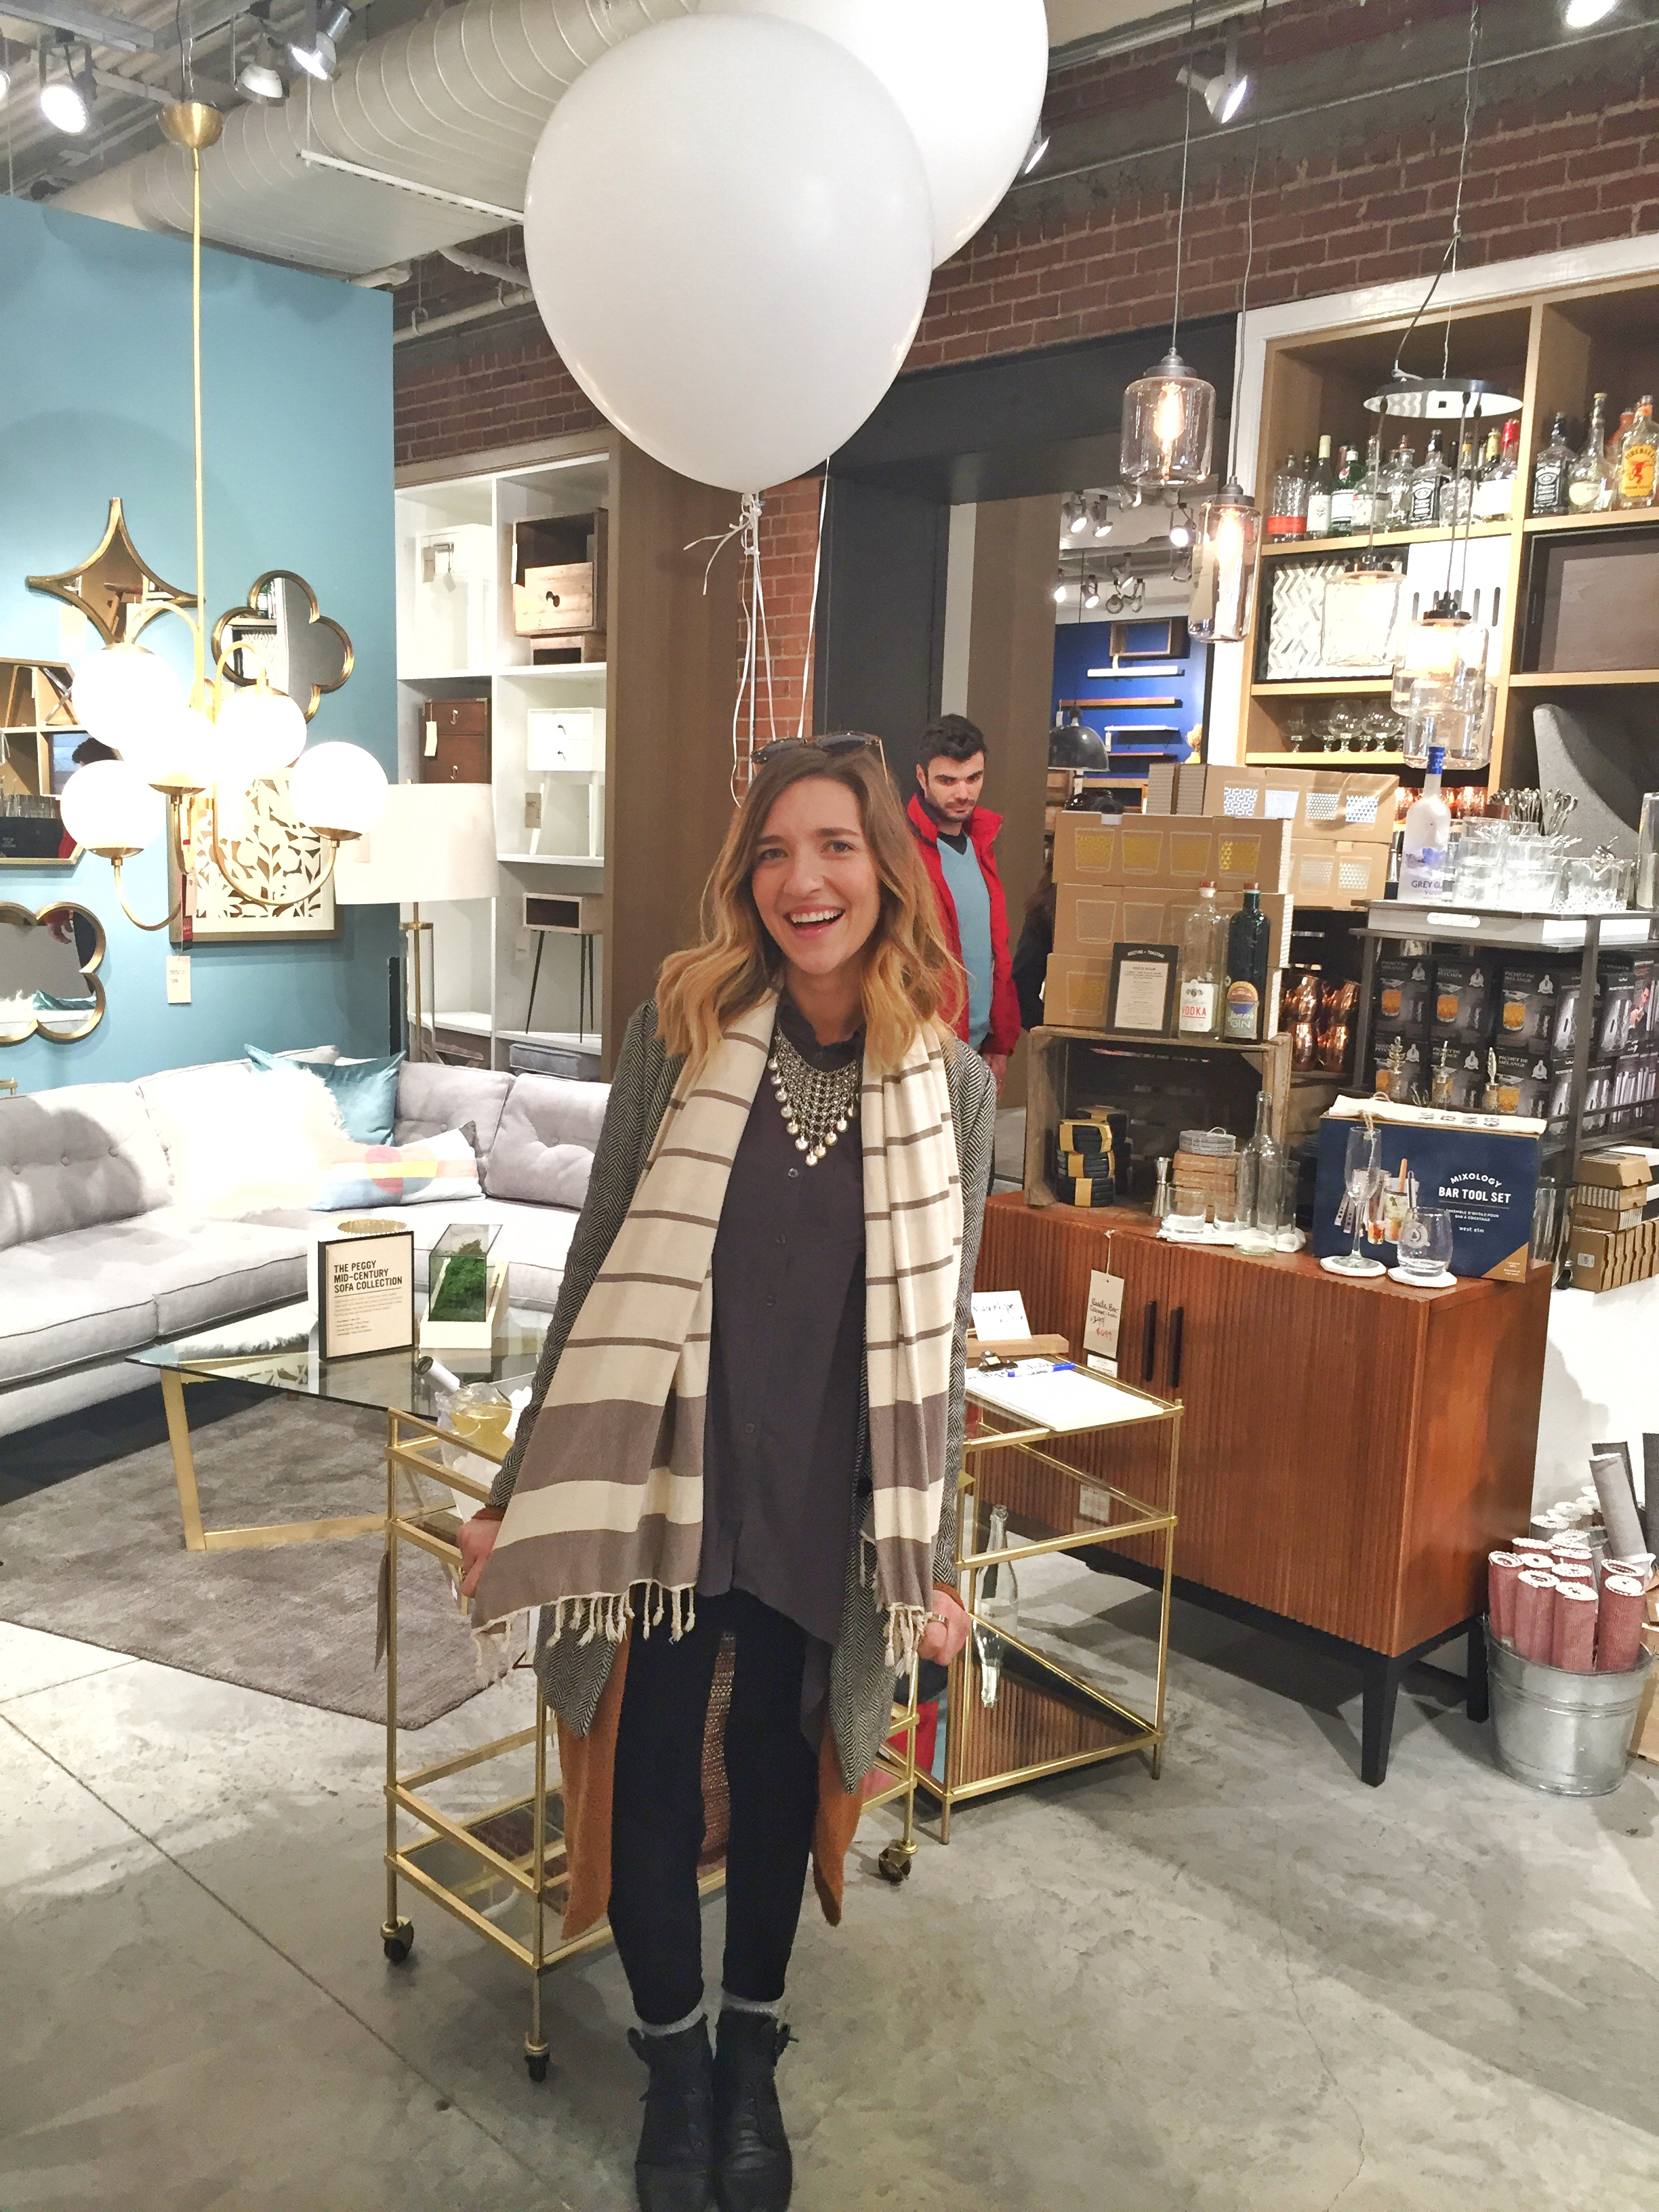 Britt Bates was seen sporting her Turkish towel in the most chic way!